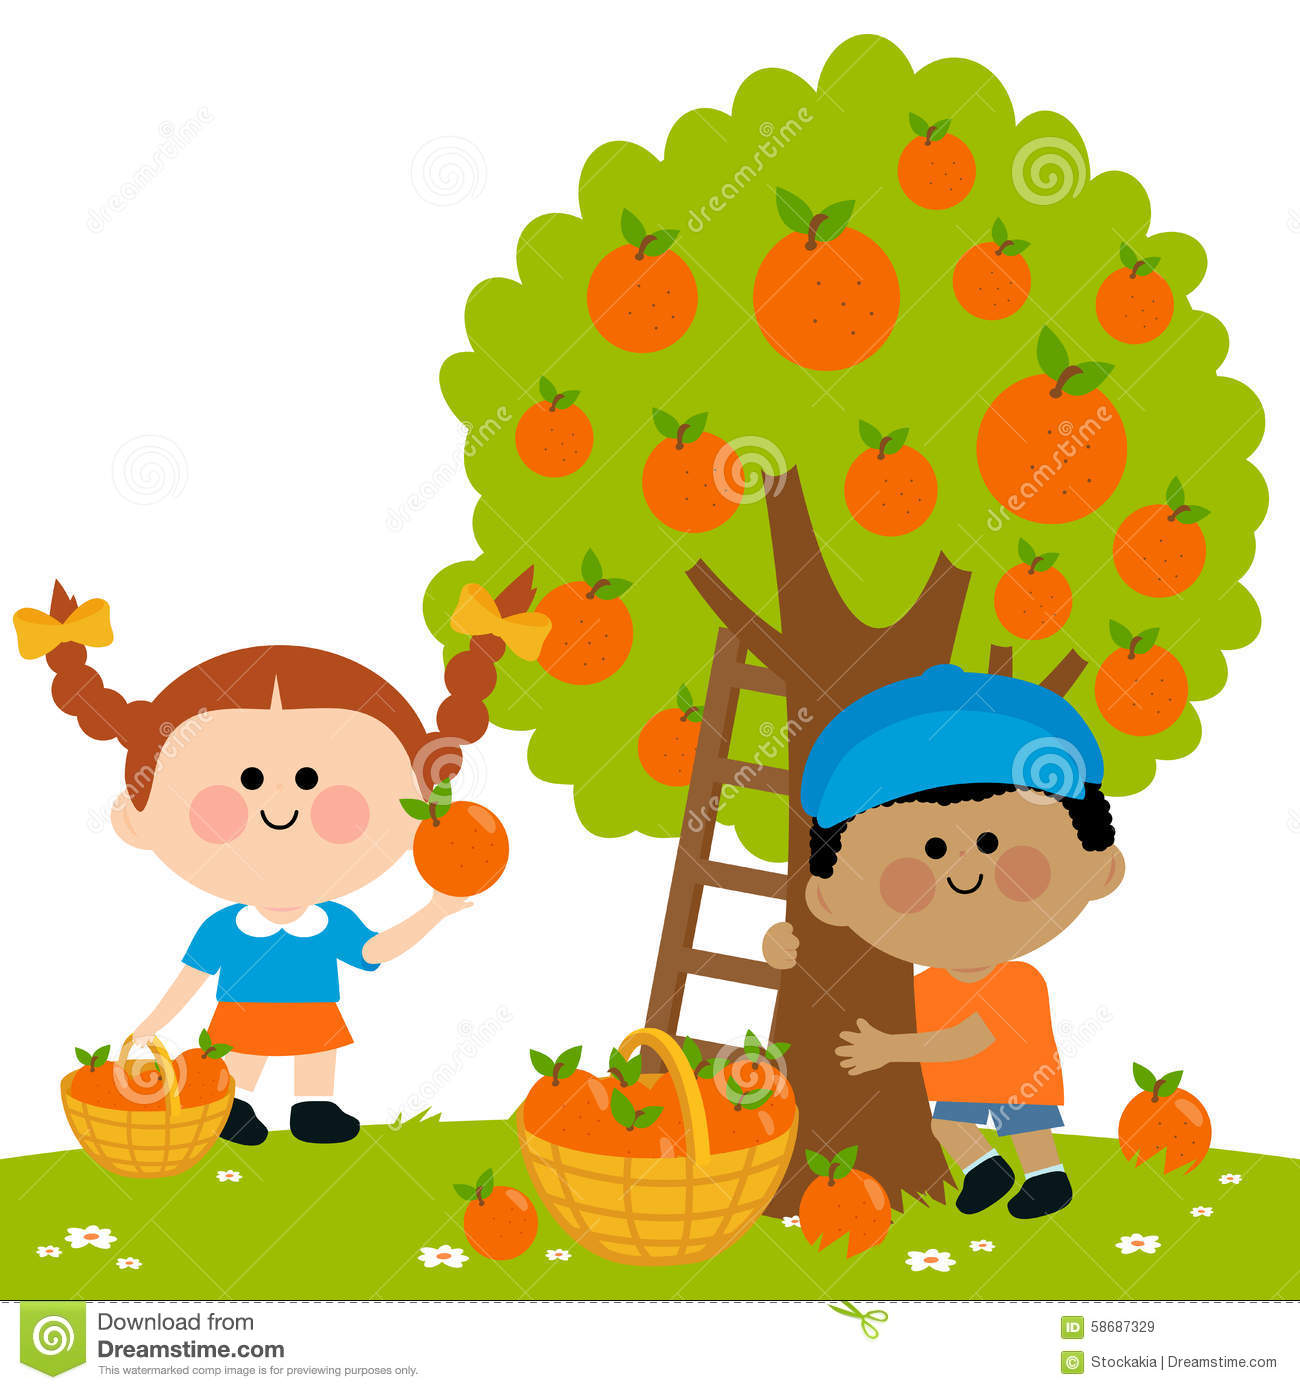 Picking Vegetables Clip Art